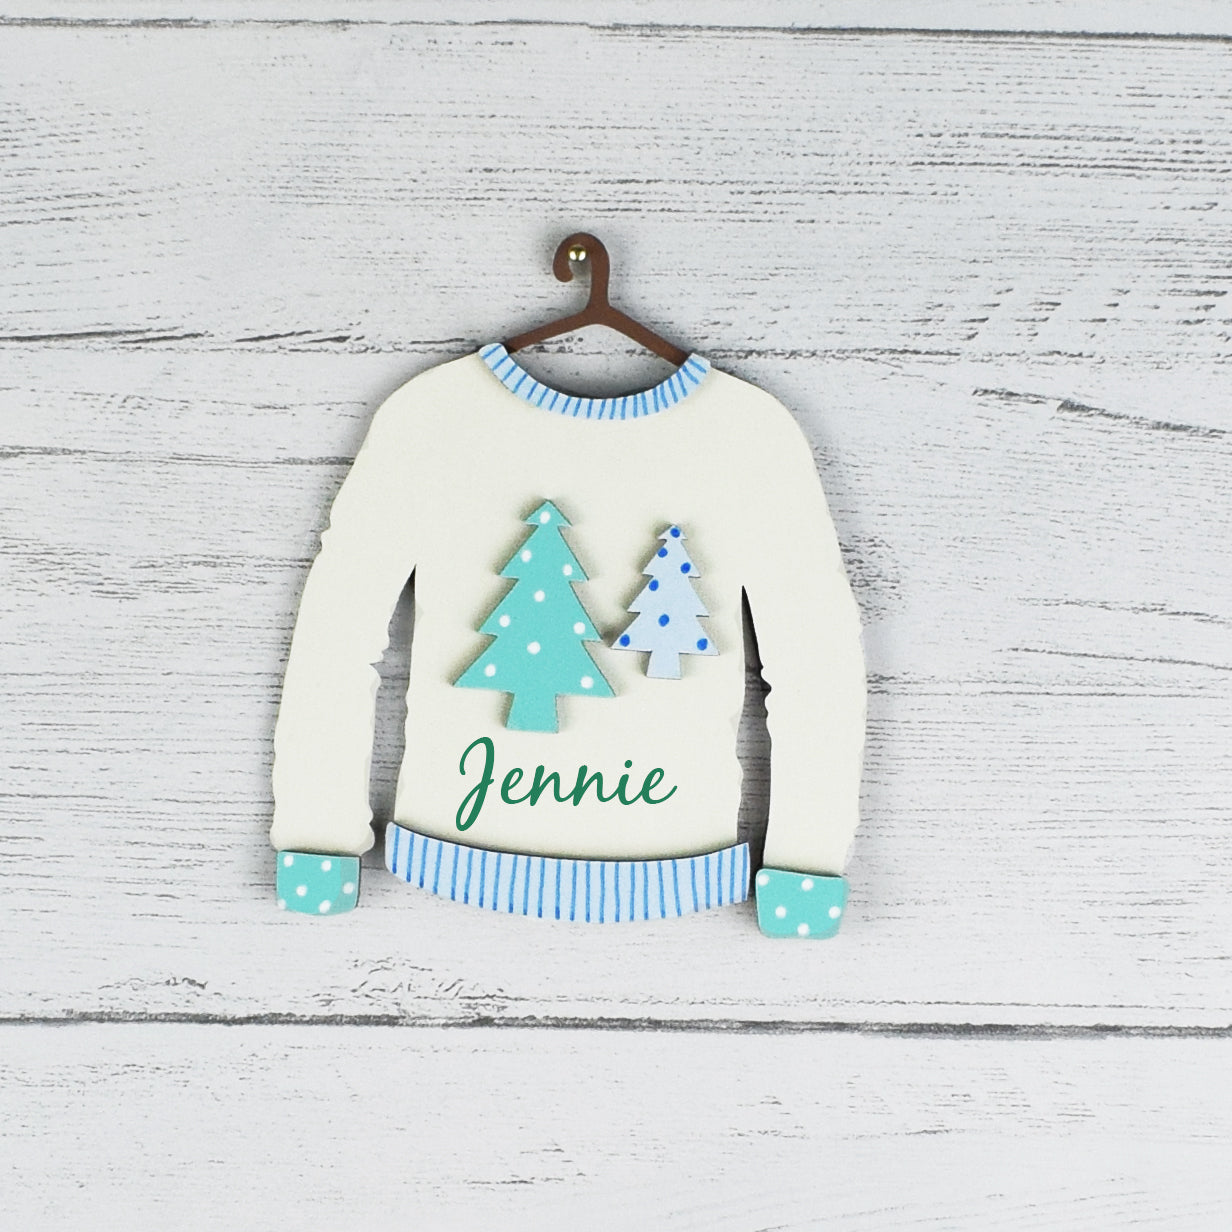 🔎zoom  Request a custom order and have something made just for you. This seller usually responds within 24 hours. Christmas Jumper Tree Decorations, Personalised Christmas Tree Jumper Decorations, Wooden Tree Decorations, Name Tree Baubles